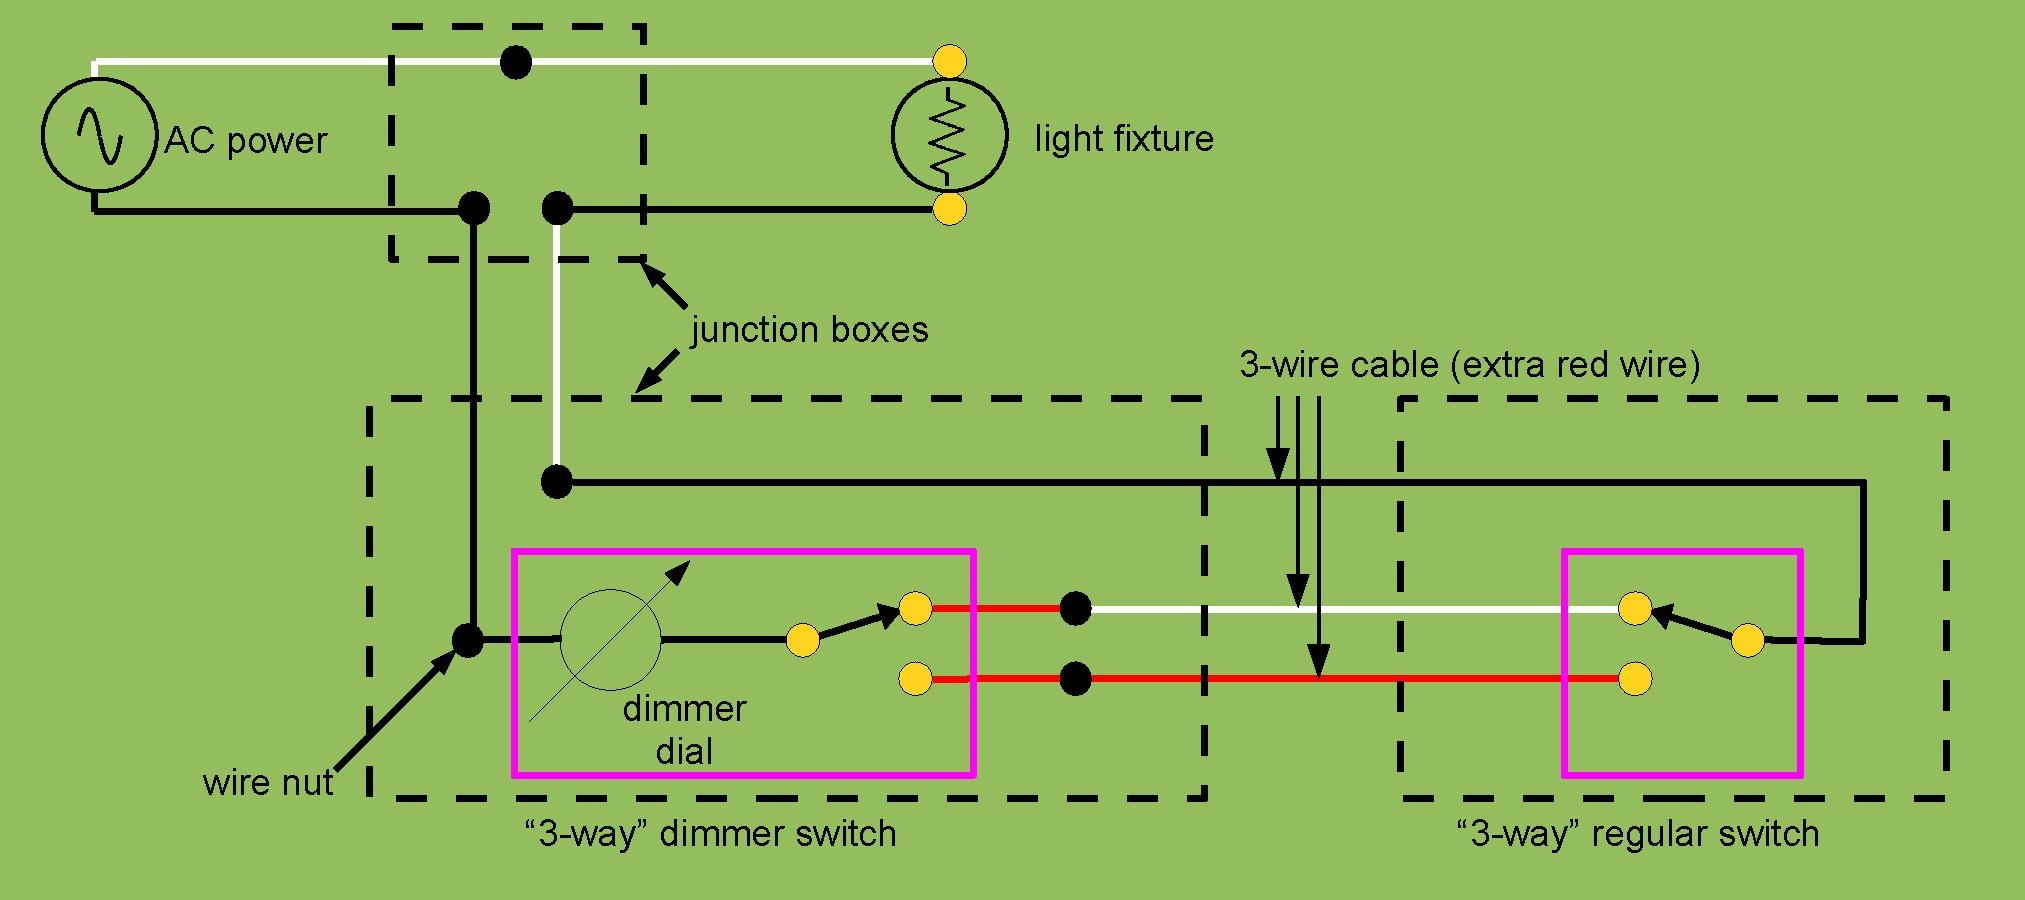 File:3-Way Dimmer Switch Wiring.pdf - Wikimedia Commons - 3 Way Dimmer Switch Wiring Diagram